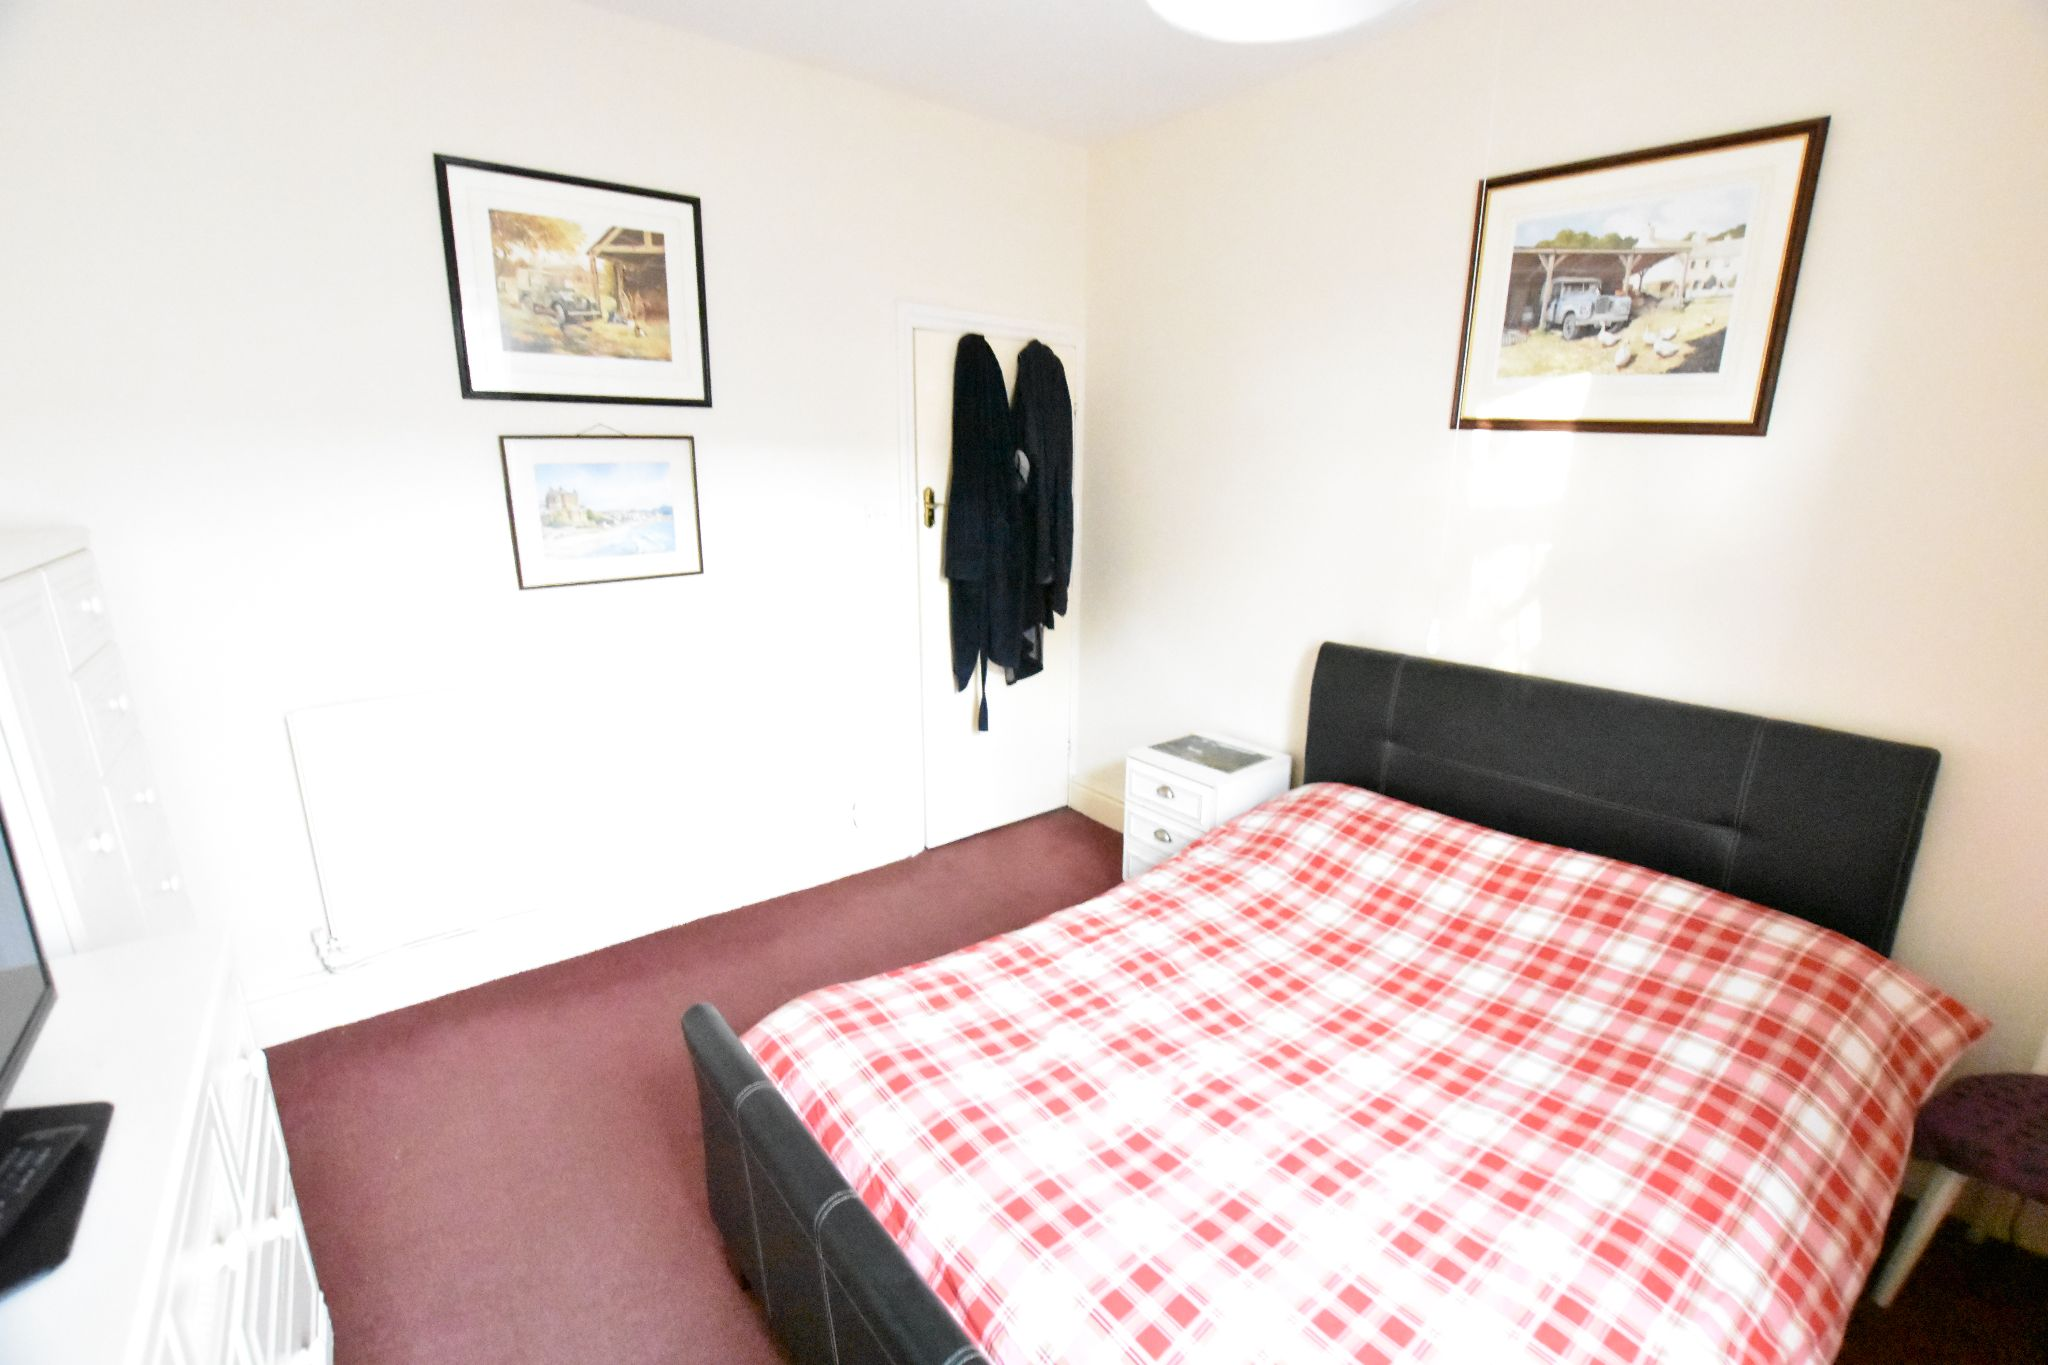 Image 1 of 2 of BEDROOM 1, on Accommodation Comprising for